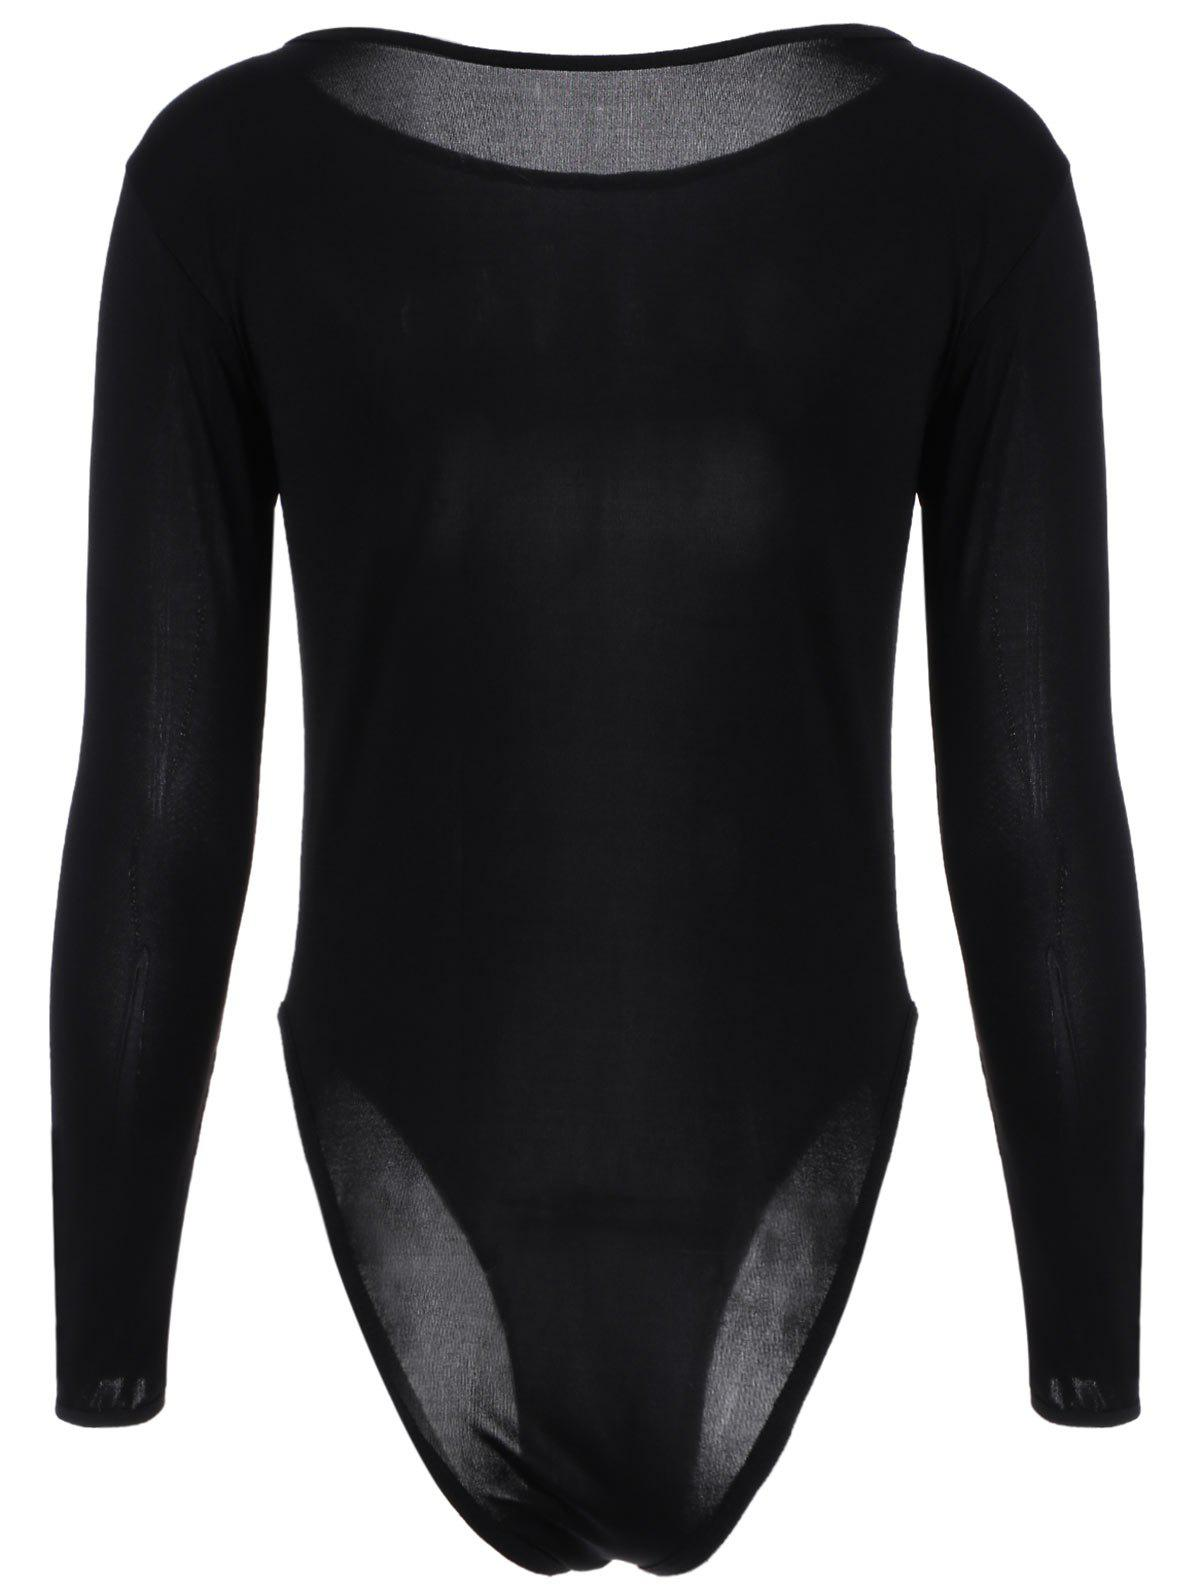 High Cut Bodysuit with Long Sleeve - BLACK ONE SIZE